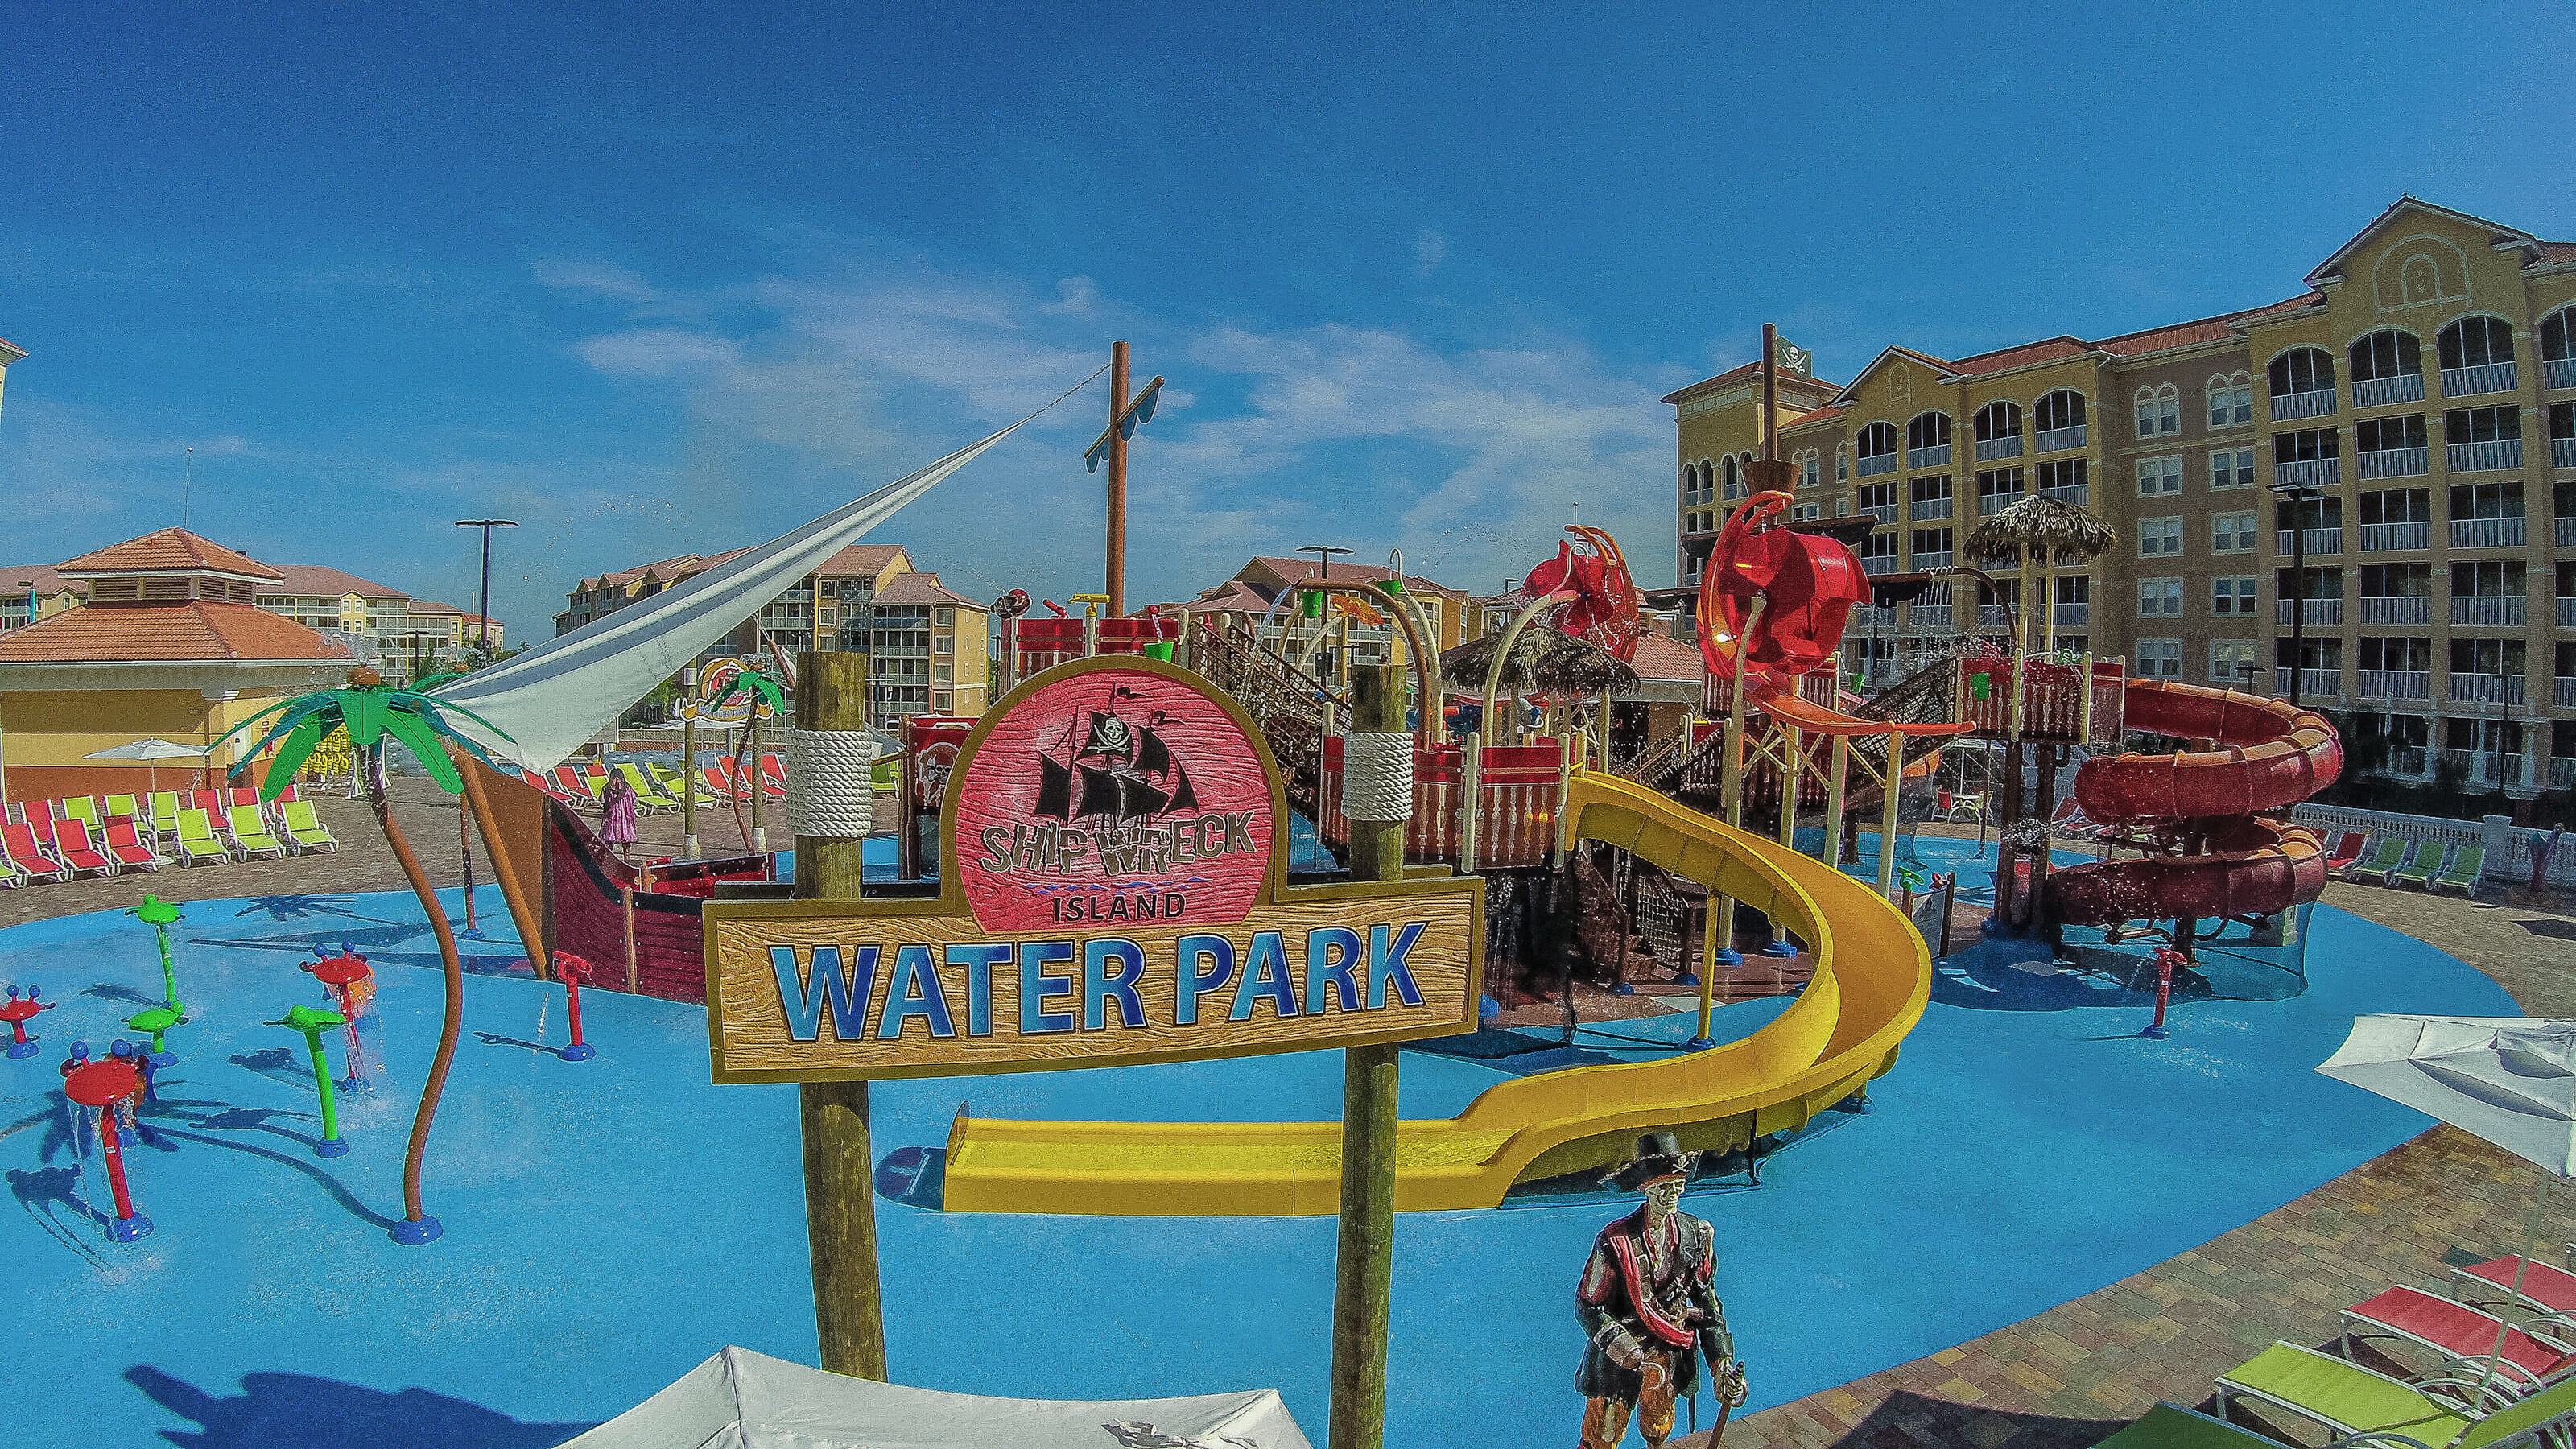 Shipwreck Island Water Park | Westgate Vacation Villas Resort & Spa | Orlando, FL | Westgate Resorts